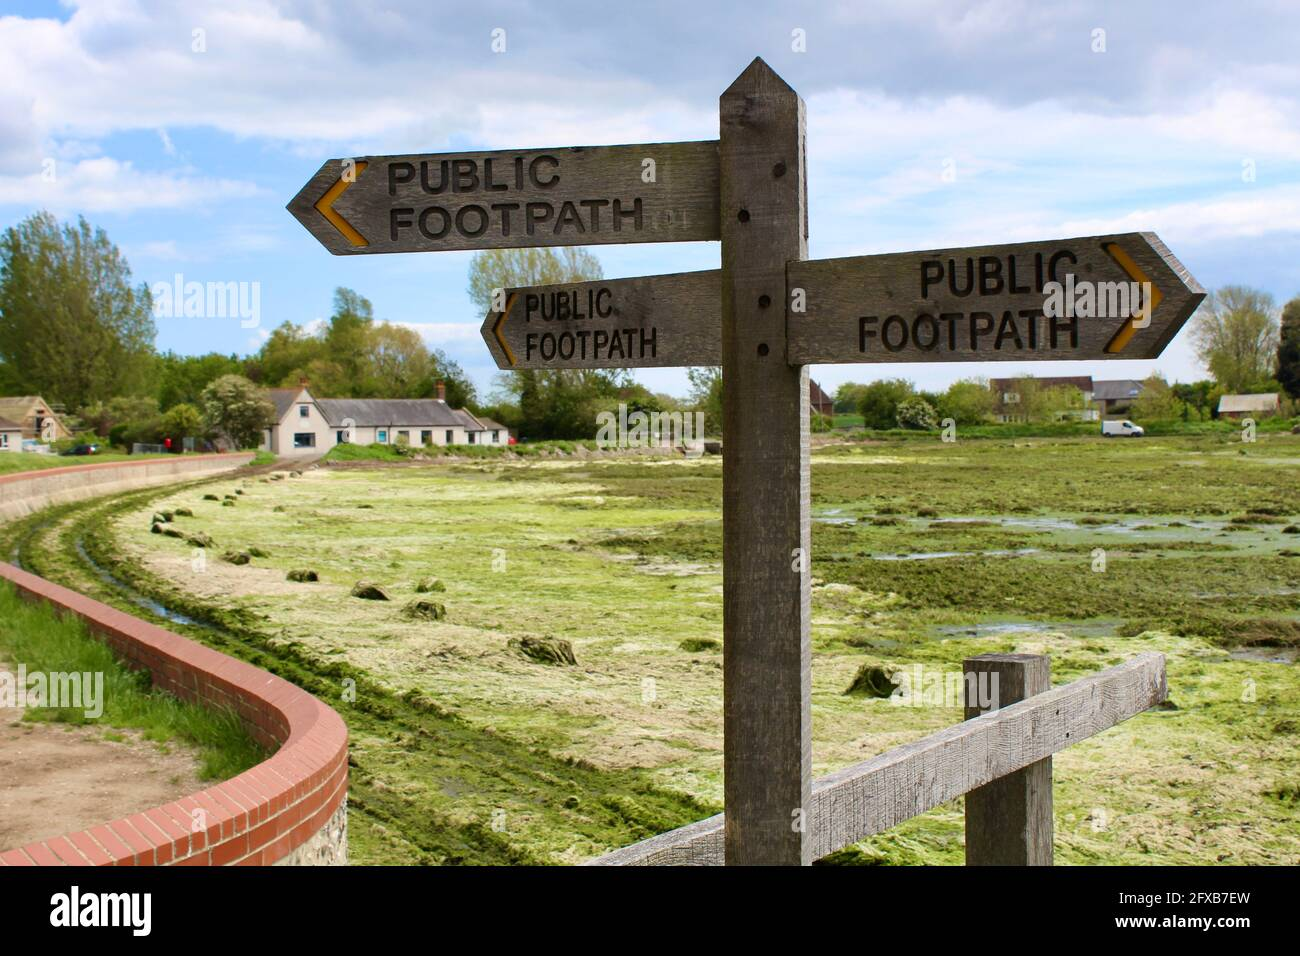 Public footpath sign at Bosham harbour with the old school house in the background. High tide left much seaweed on the road. Car tracks visible. Stock Photo